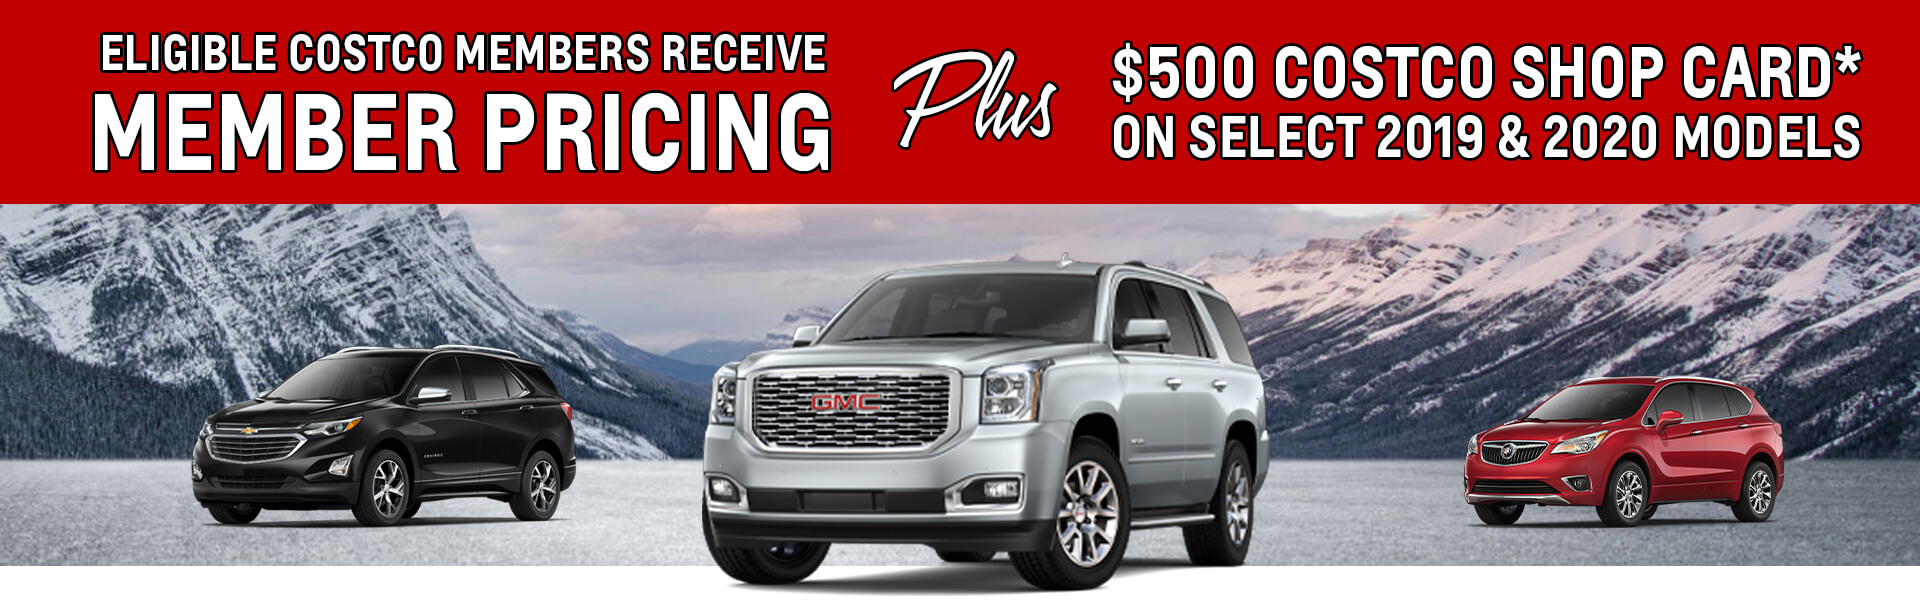 Eligible Costco Members Receive Member Pricing plus $500 Costco Shop card* on Select 2019 and 2020 models